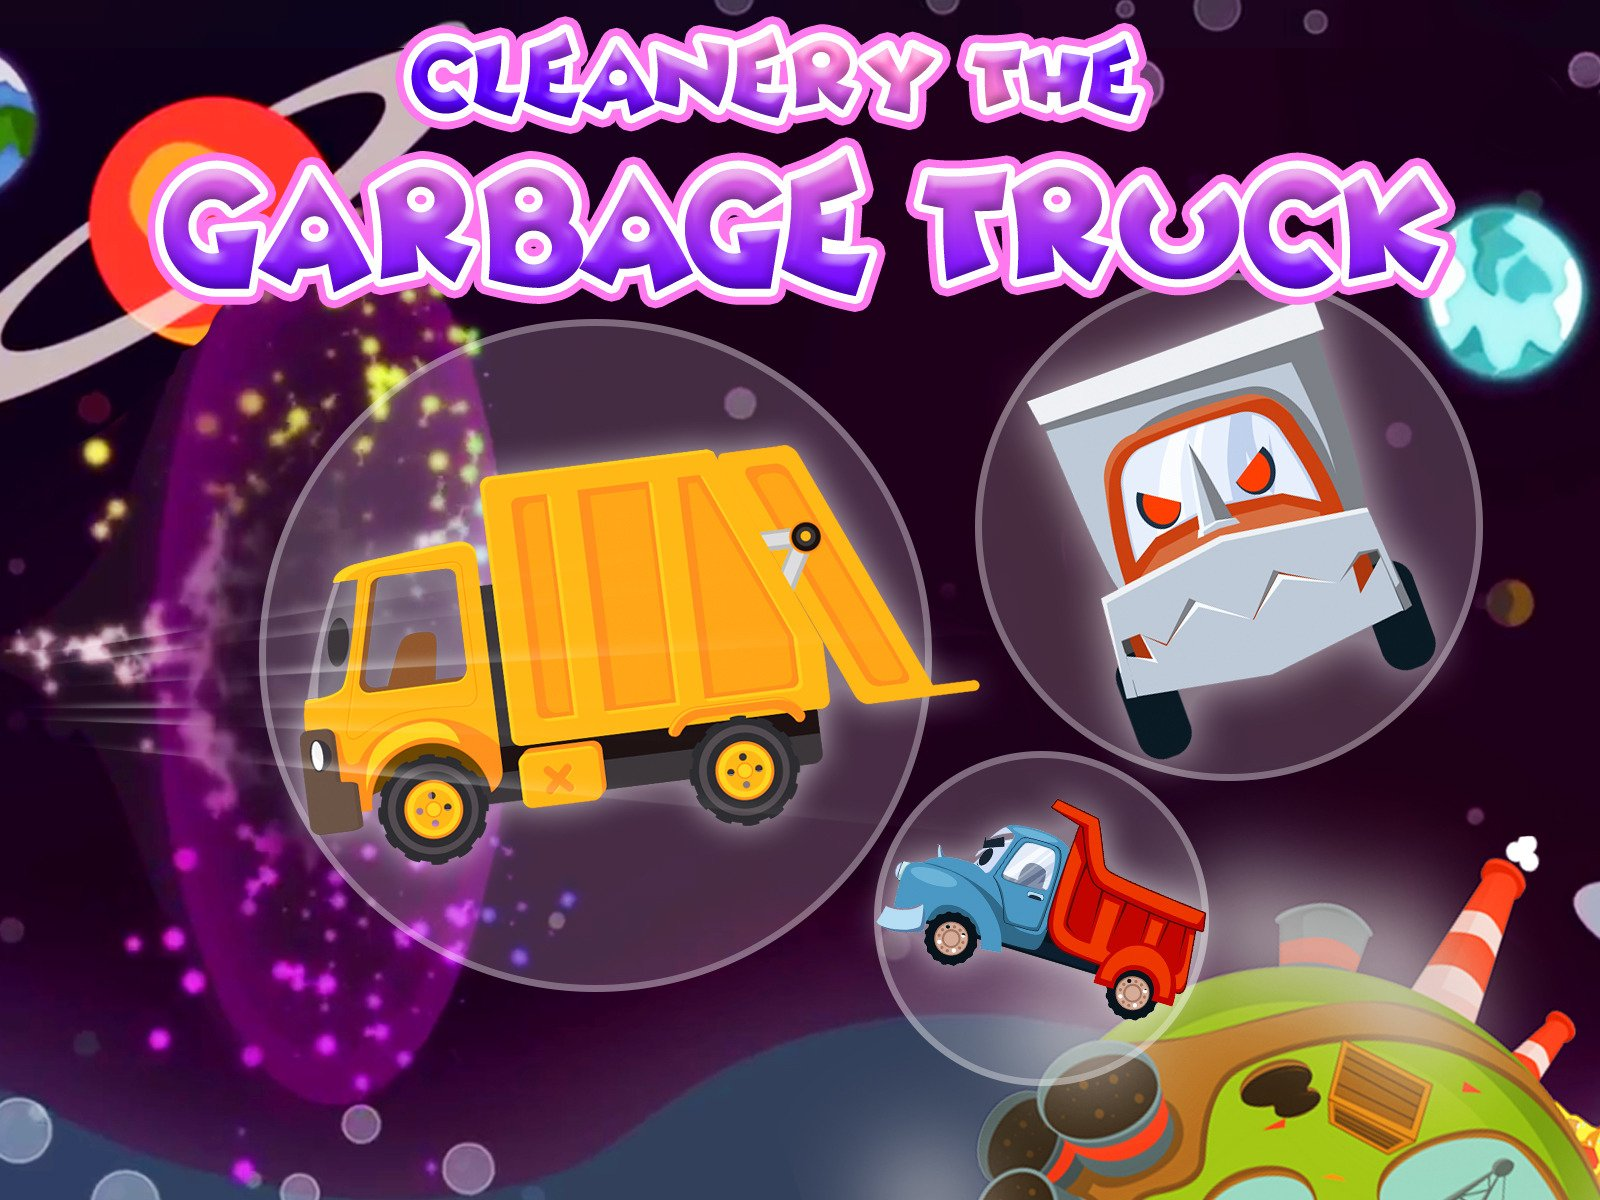 Cleanery the Garbage Truck - Season 2